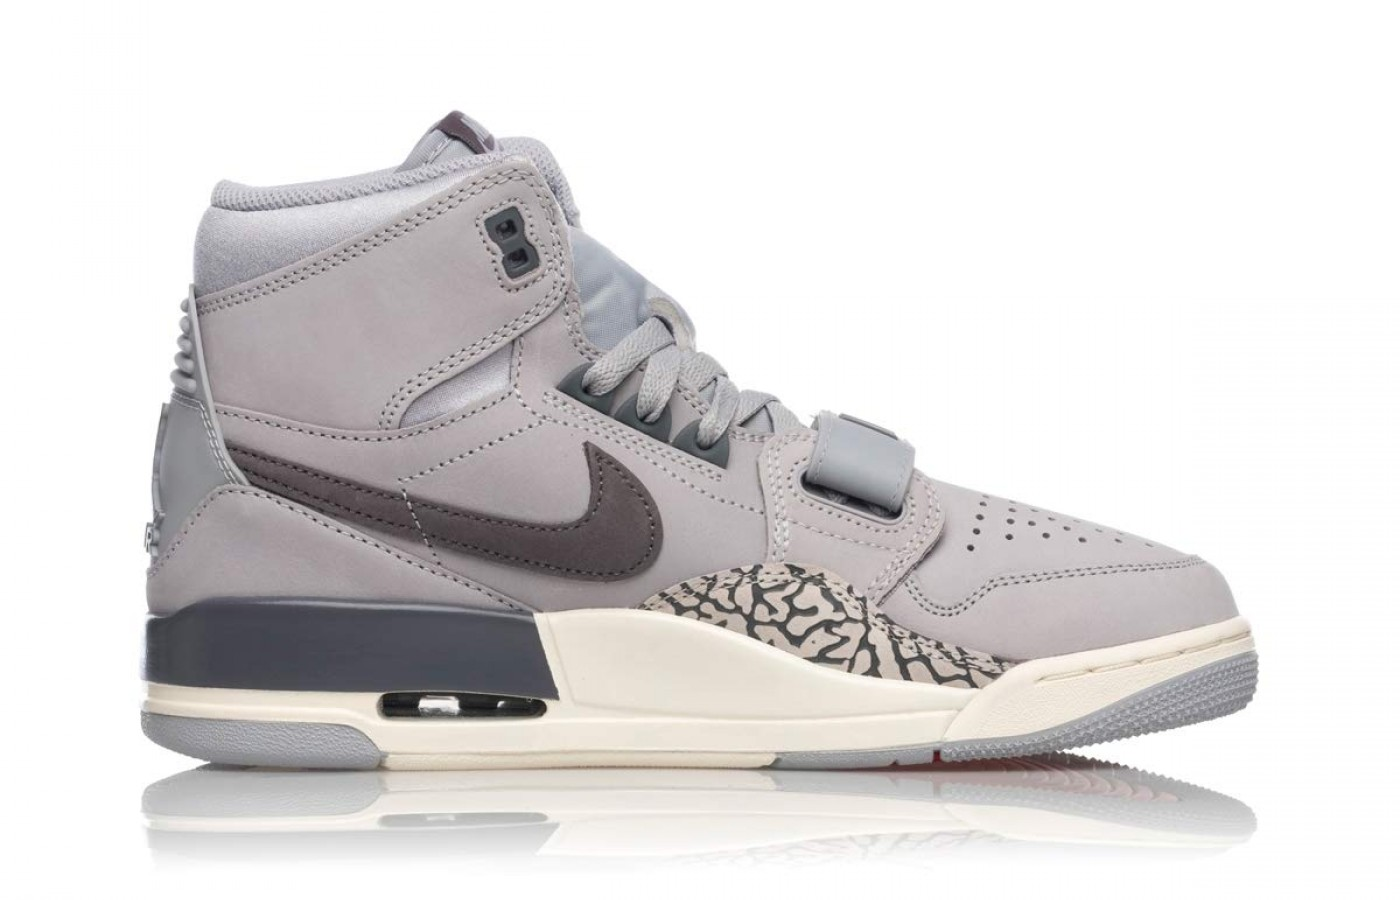 aquí Objetado Lo anterior  Nike Air Jordan Legacy 312 Reviewed & Rated in 2020 | WalkJogRun